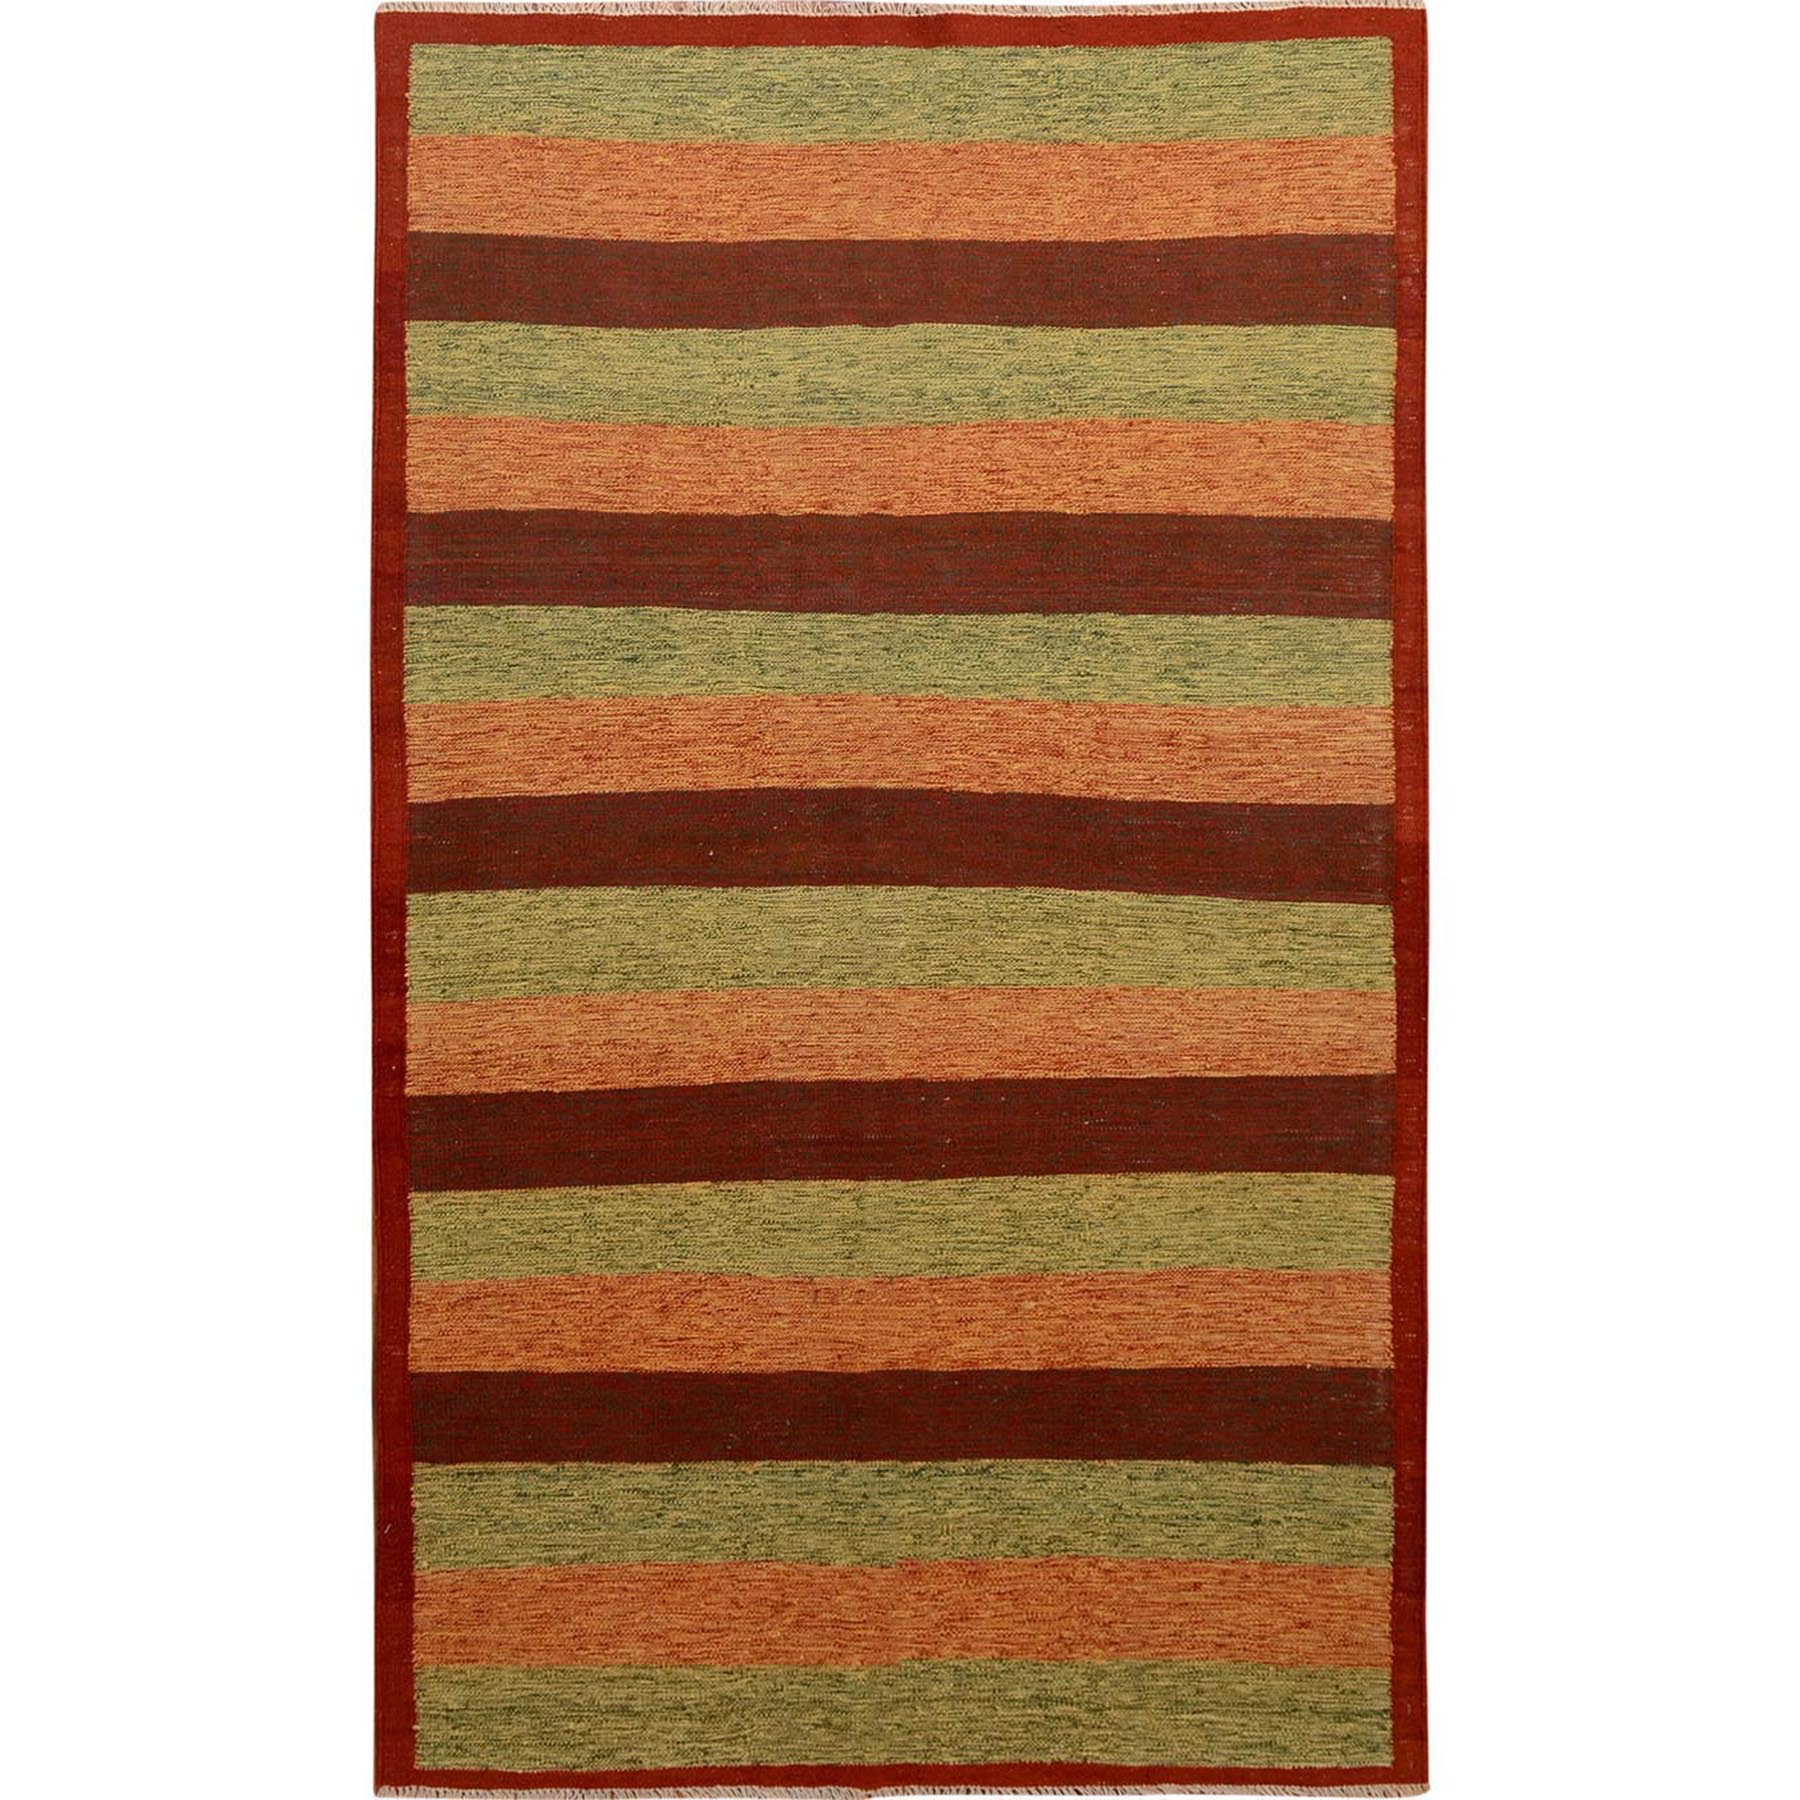 "4'9""x8' Colorful Afghan Reversible Kilim Pure Wool Hand Woven Striped Oriental Rug"